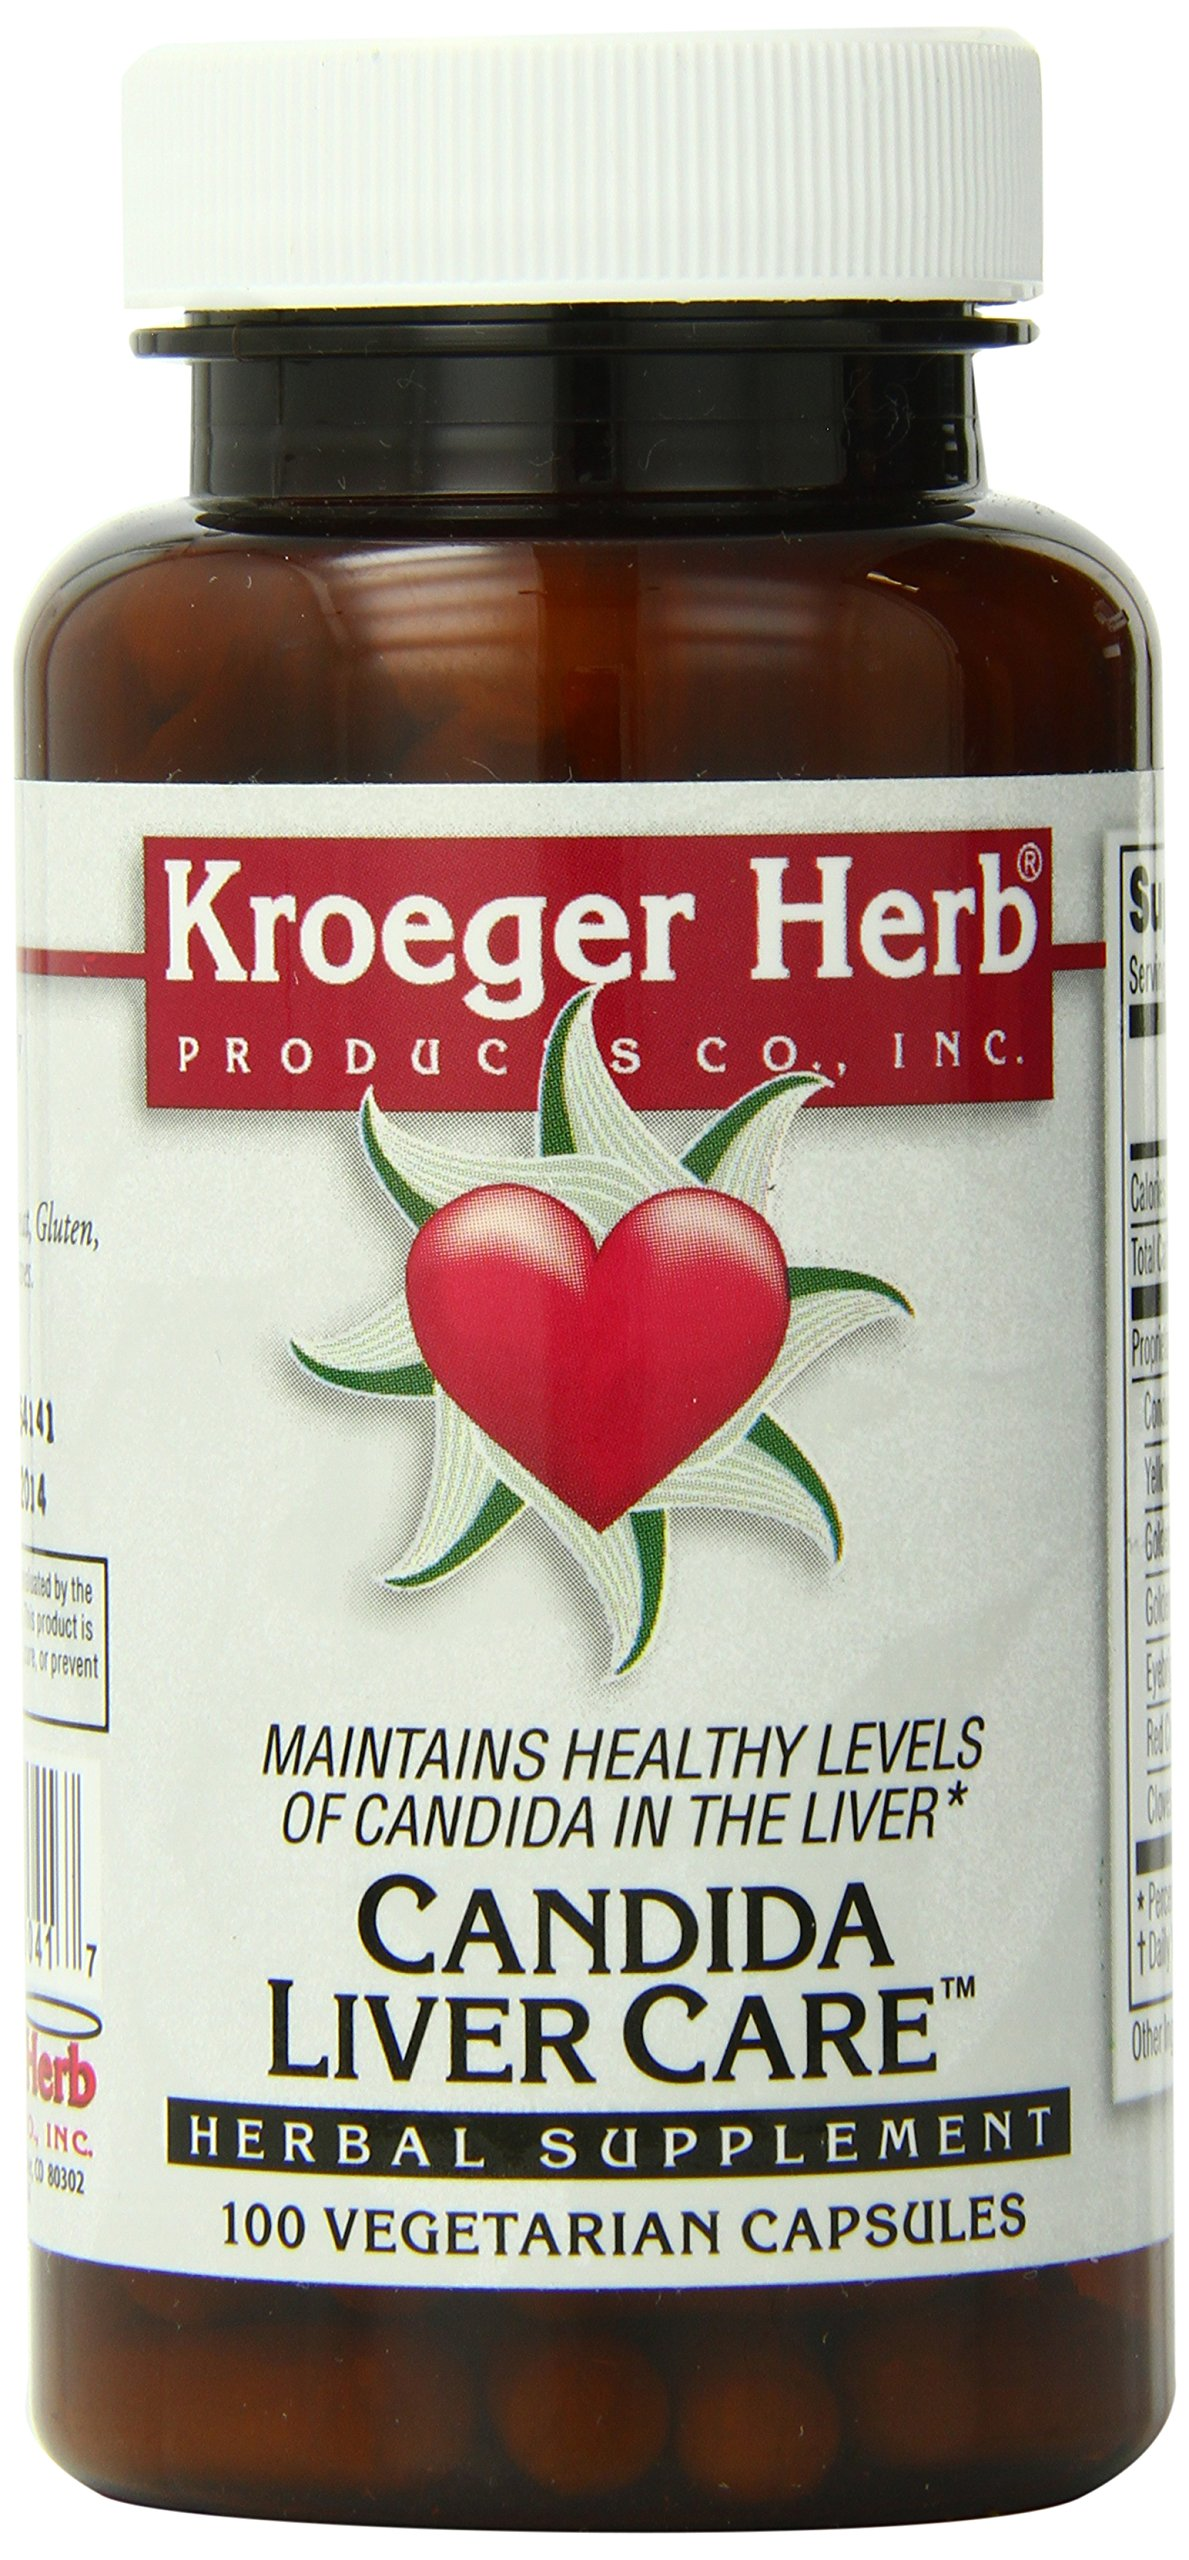 Kroeger Herb Candida Liver Care Vegetarian Capsules, 100 Count by Kroeger Herb Products